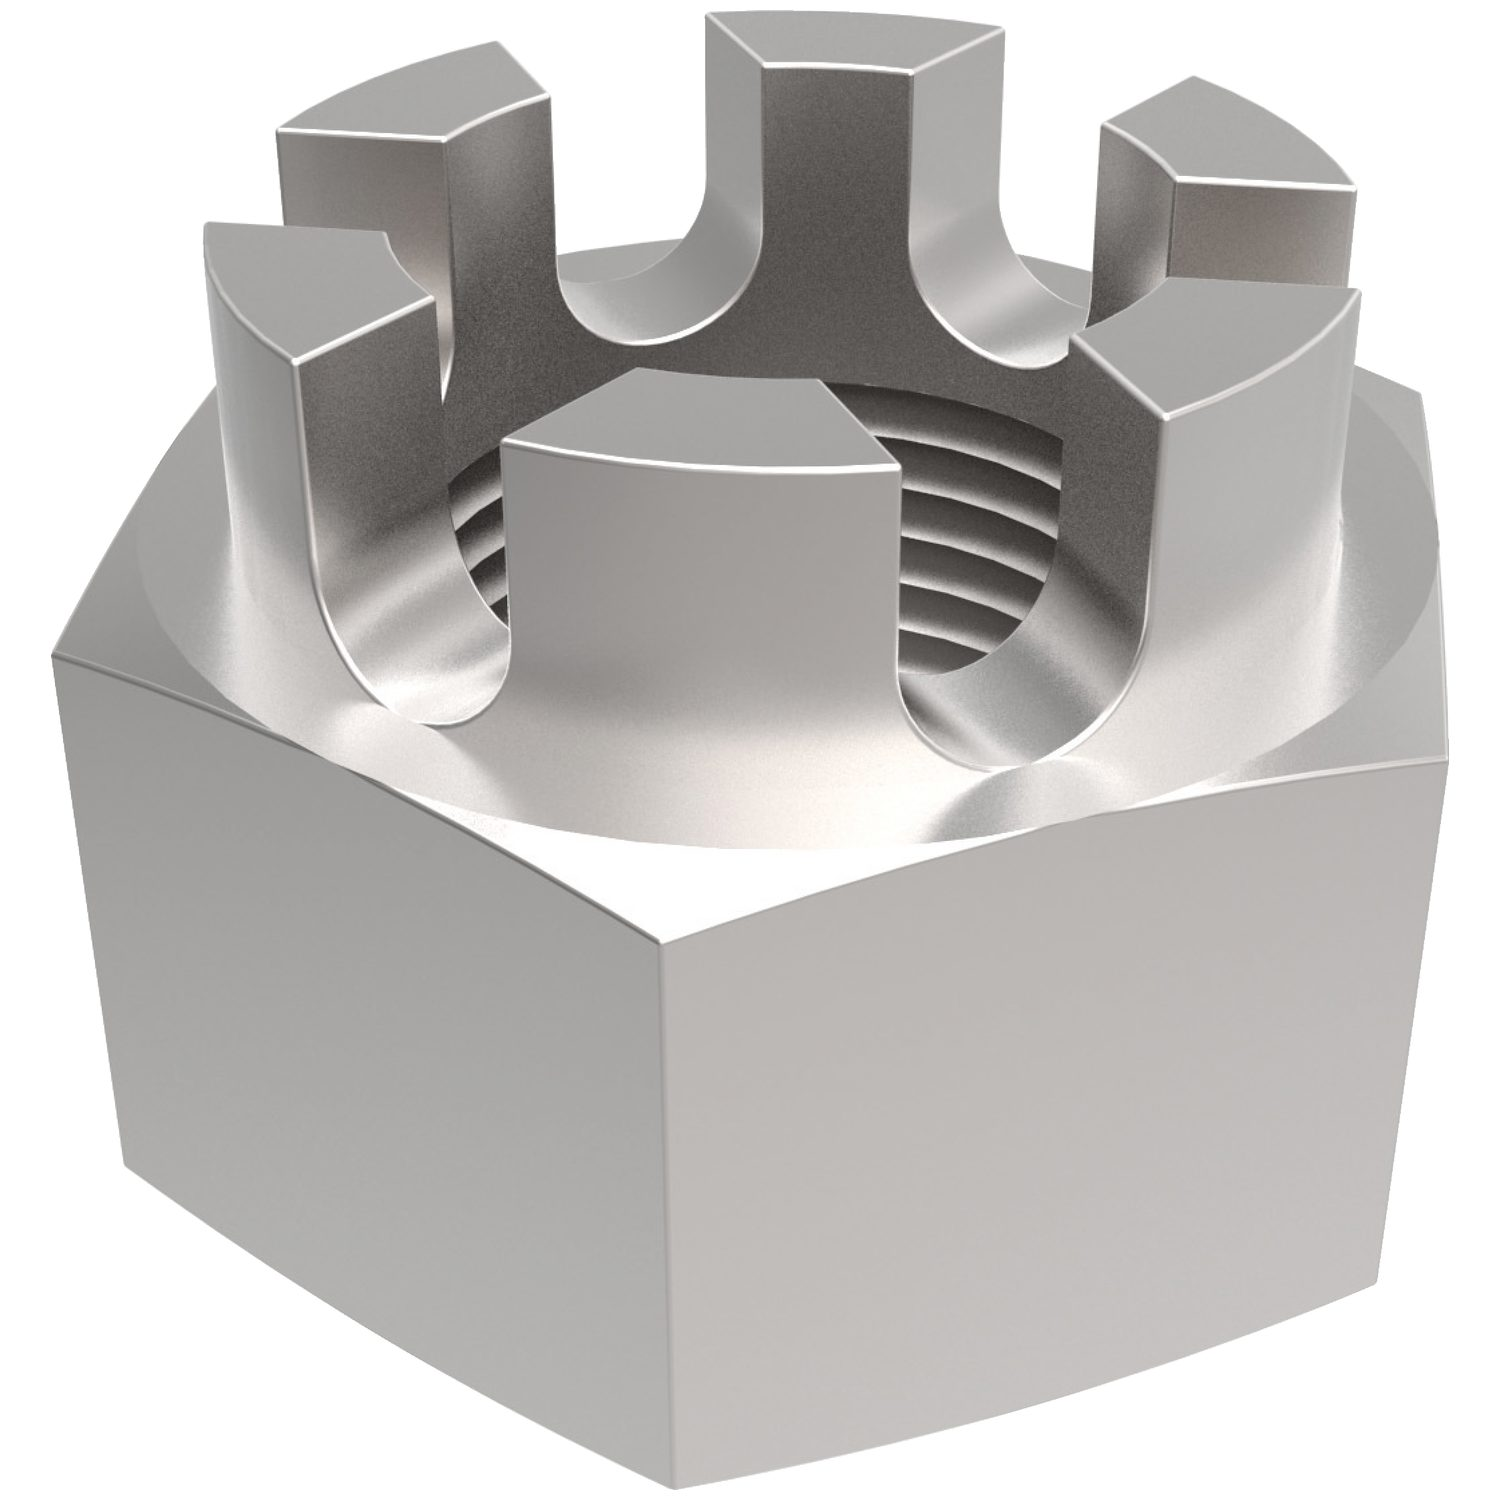 Hexagon Castle Nuts Hexagon castle nuts made from zinc-plated steel. Sizes ranging from M5 to M36. Manufactured to DIN 935.